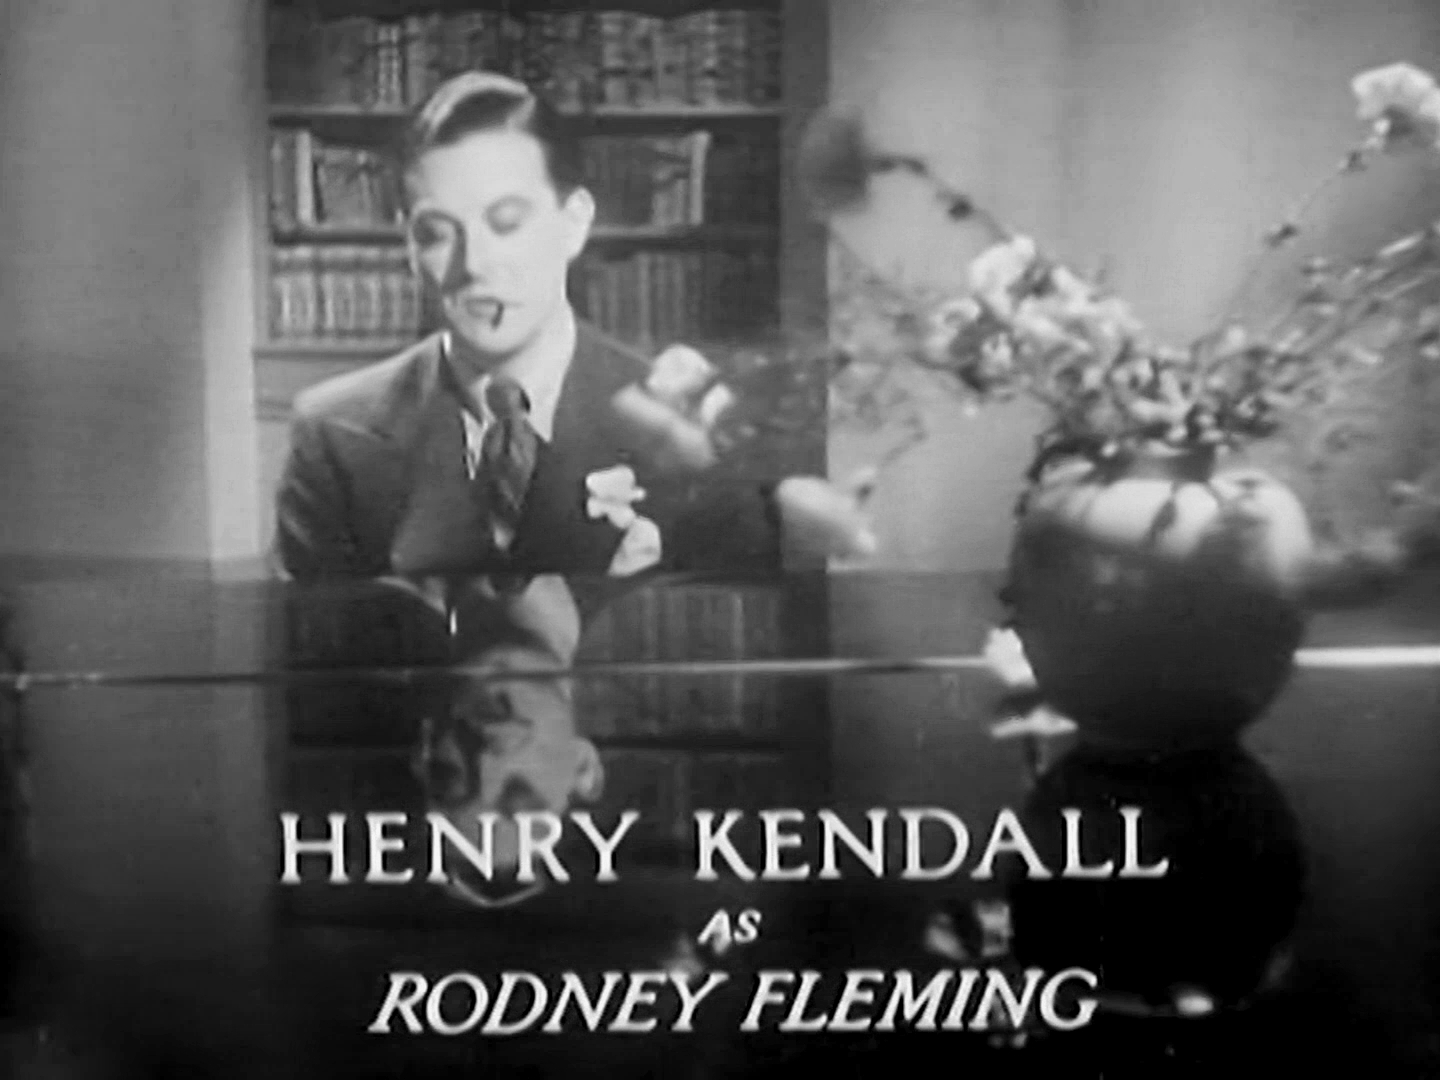 Main title from Death at Broadcasting House (1934) (7). Henry Kendall as Rodney Fleming